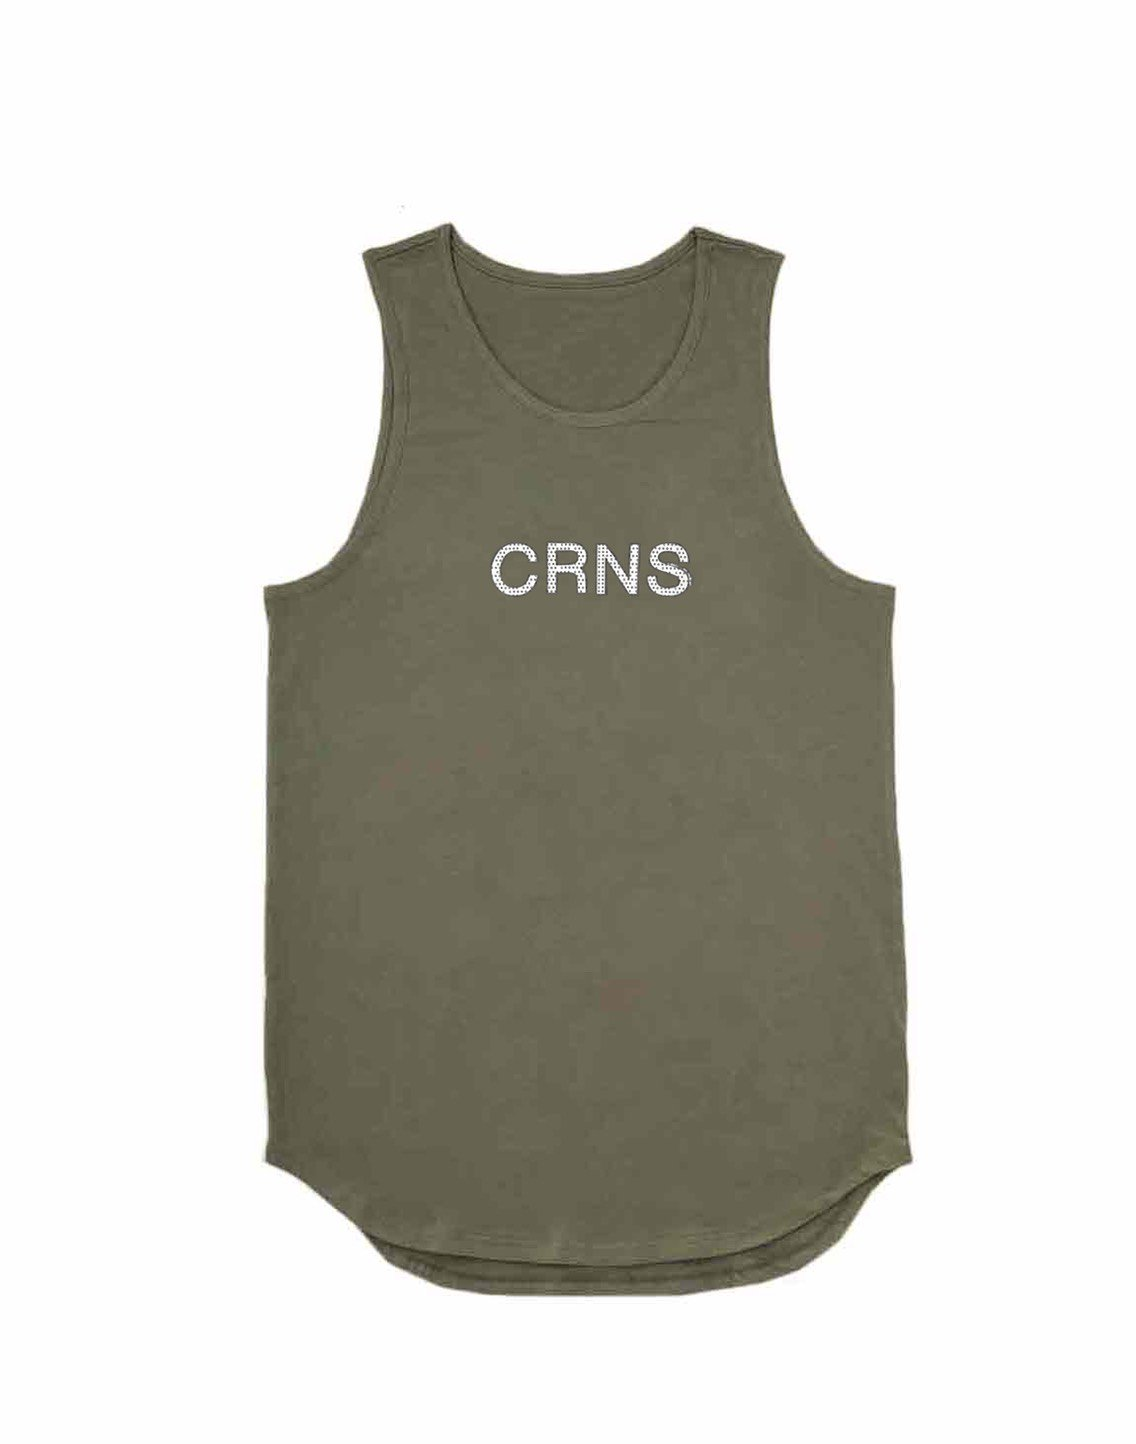 <img class='new_mark_img1' src='https://img.shop-pro.jp/img/new/icons1.gif' style='border:none;display:inline;margin:0px;padding:0px;width:auto;' />CRNS DOT LOGO TANKTOP【KHAKI】